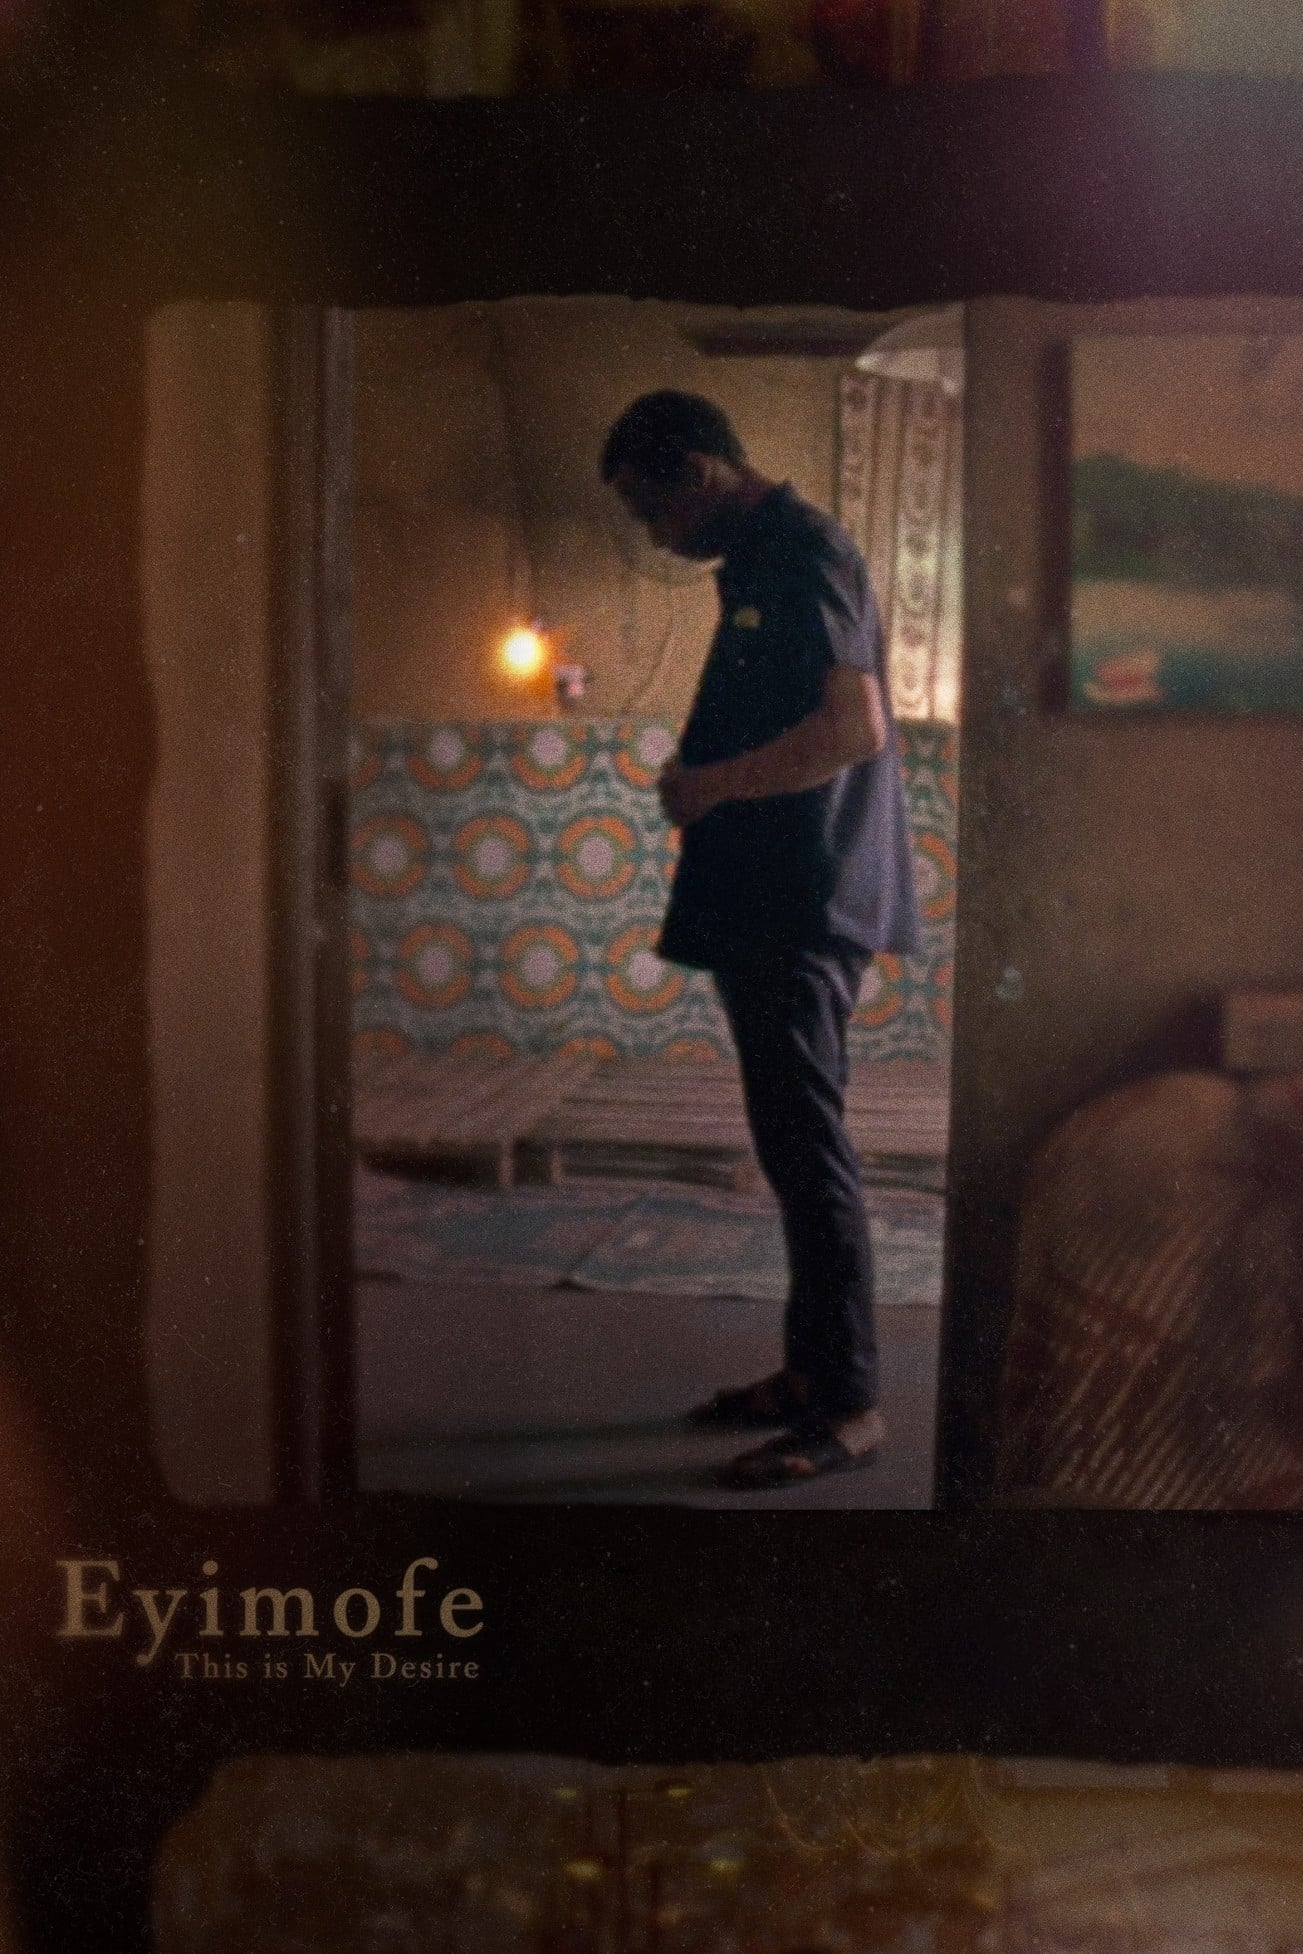 Poster for Eyimofe (This Is My Desire)